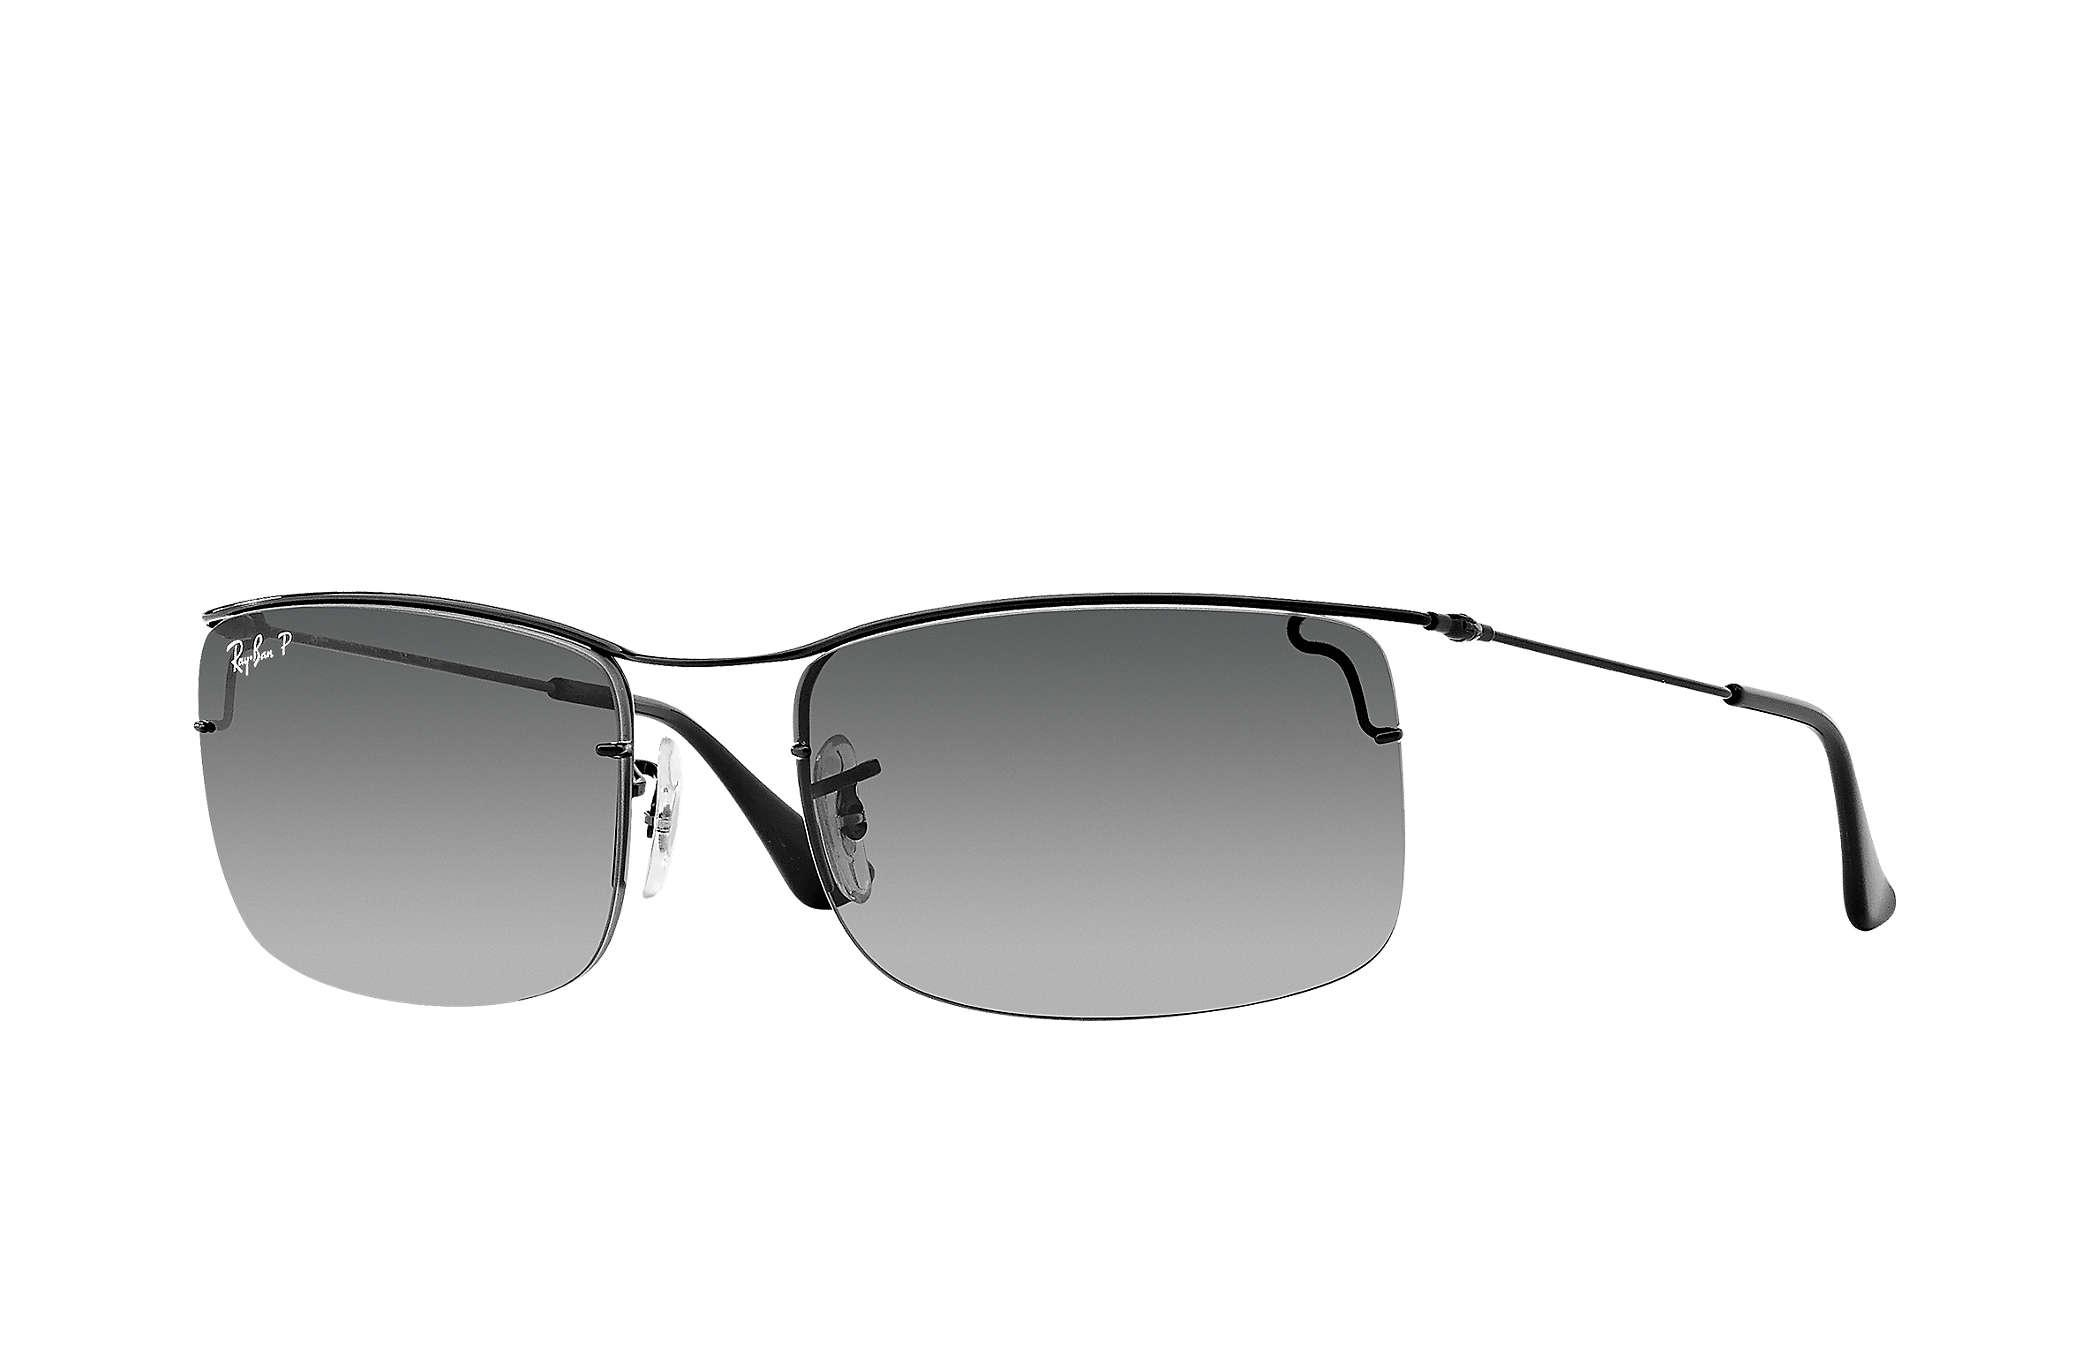 bdfbeb1eaa2 Lyst - Ray-Ban Rb3499 in Gray for Men